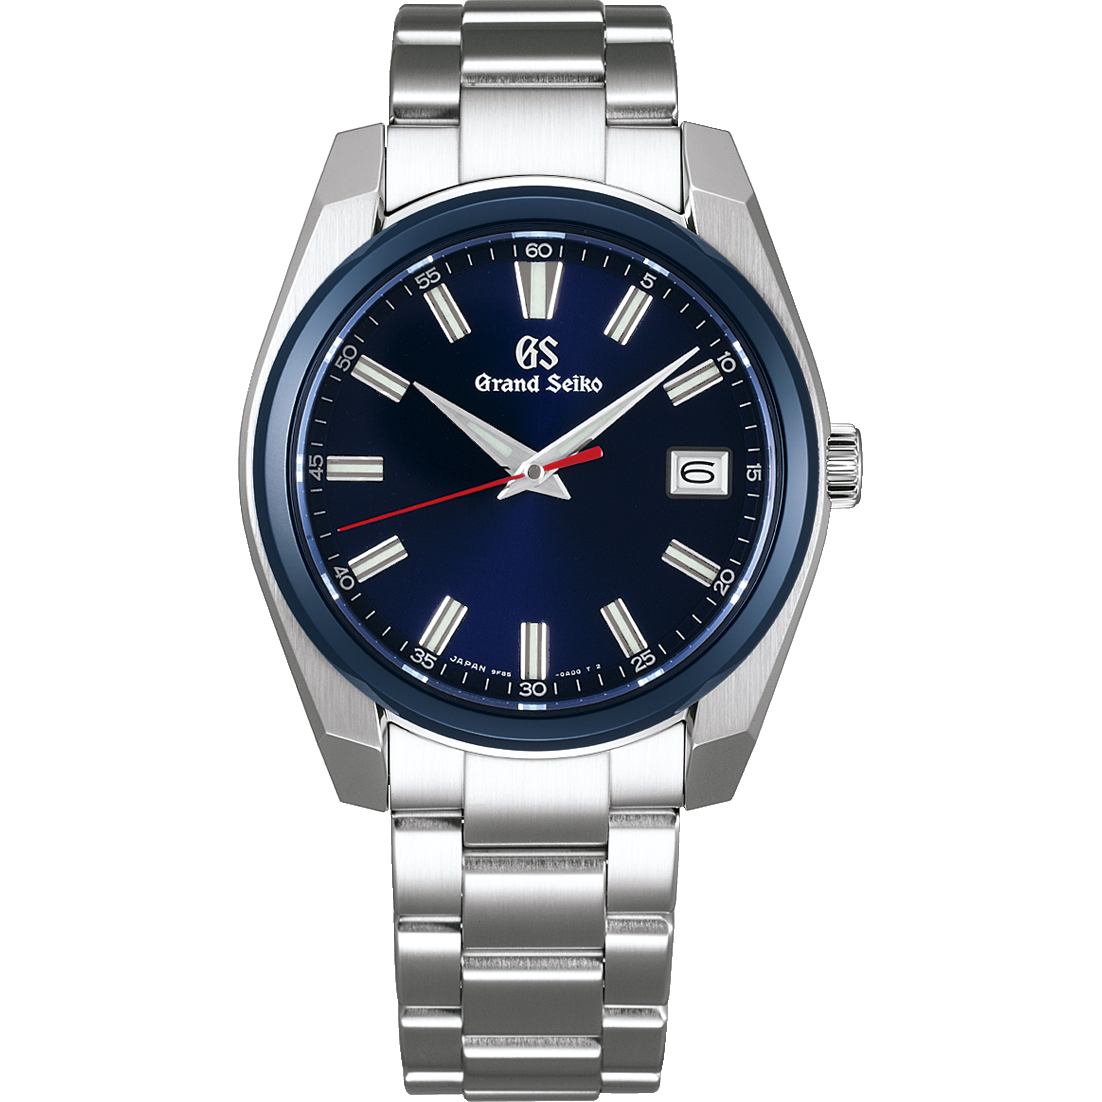 Grand Seiko 60th Anniversary Limited Edition Sport Watch